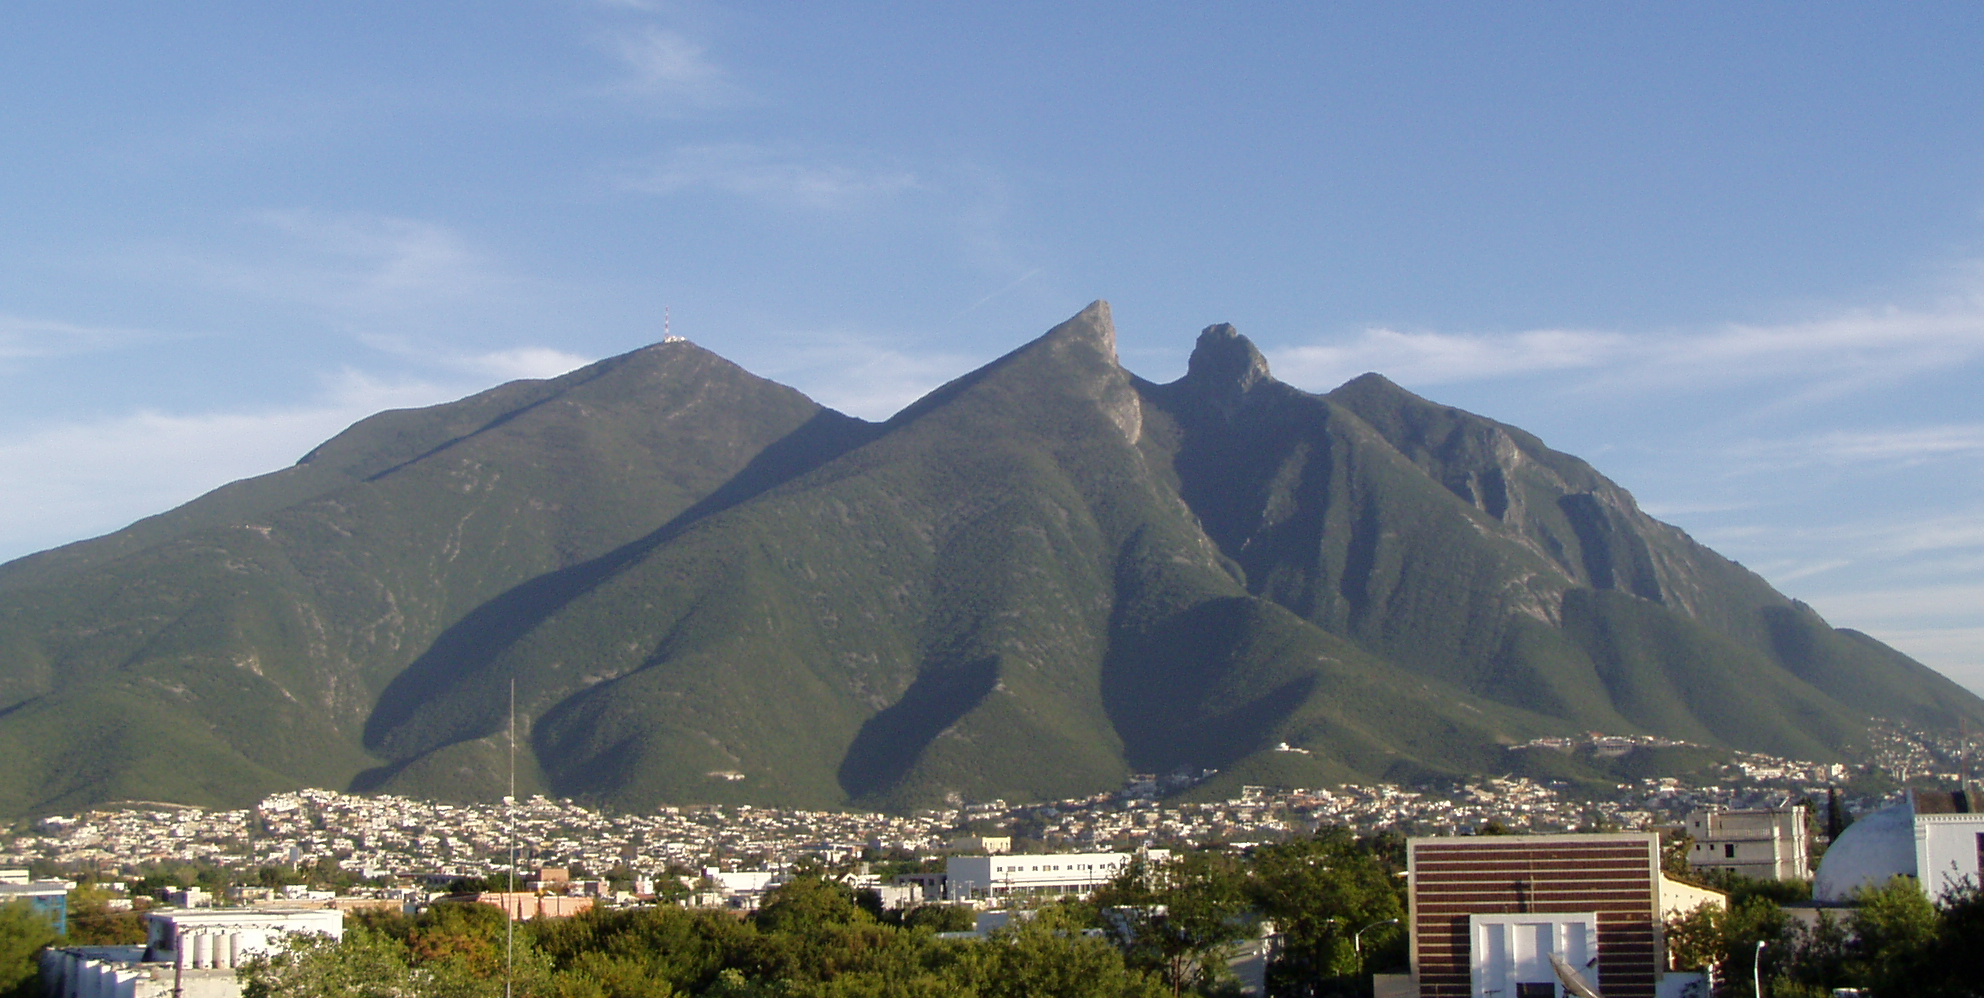 Monterrey Mexico  City pictures : Cerro de la Silla Wikipedia, the free encyclopedia